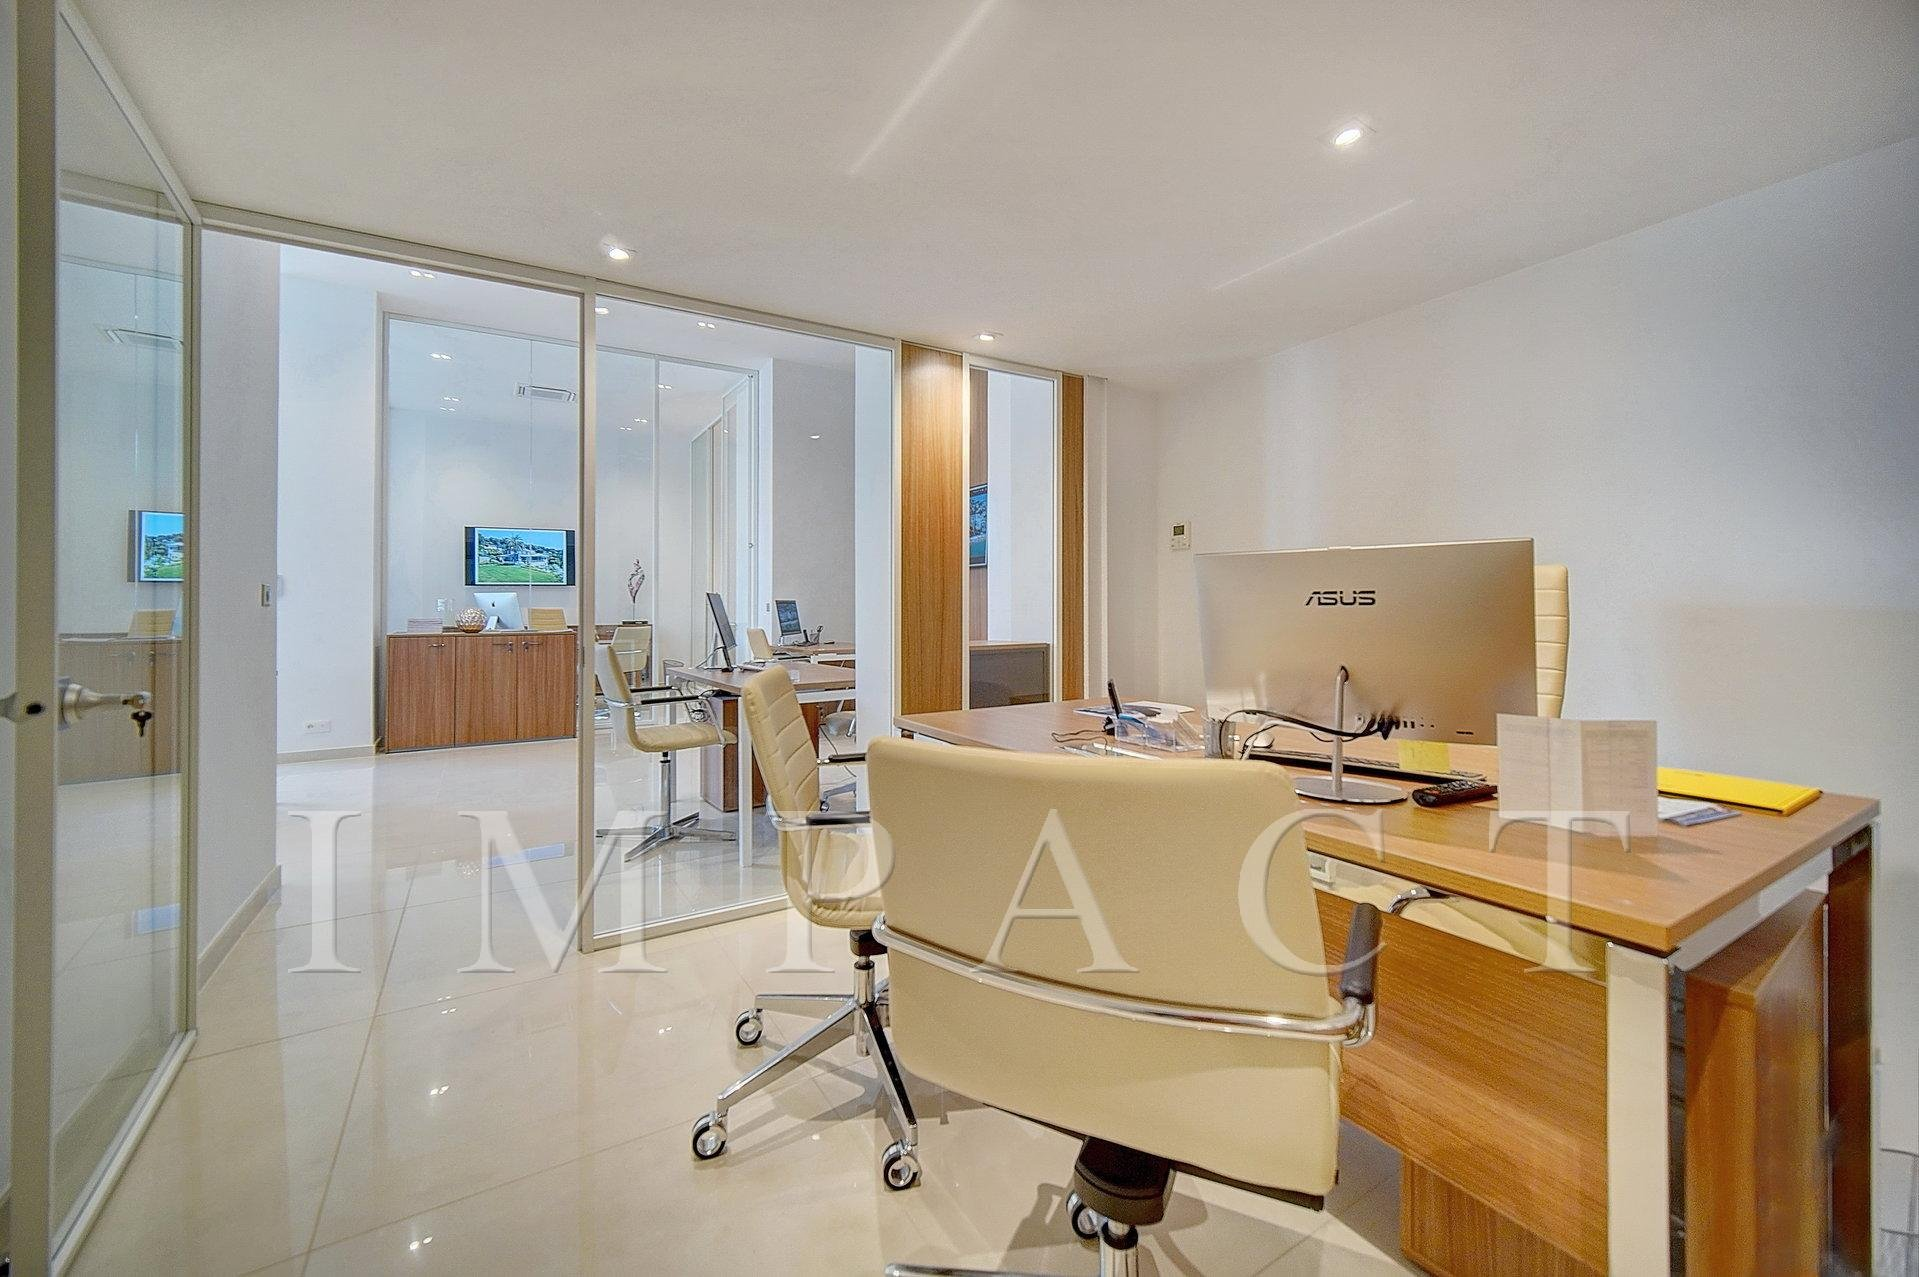 Office to rent at the Grand Hotel, park view, 5 minutes walk from the Palais, Cannes